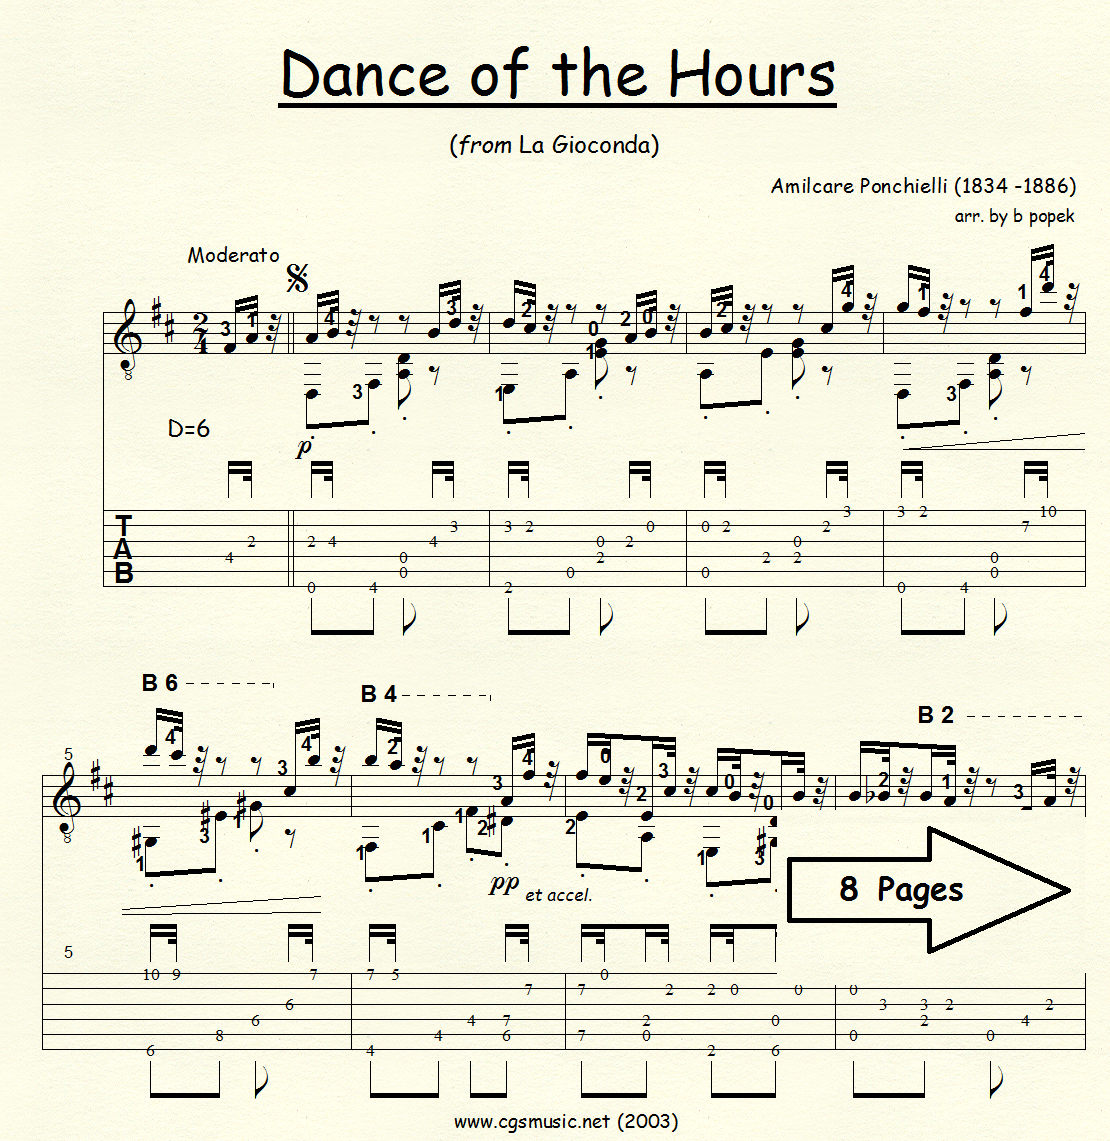 Dance of the Hours (Ponchielli) for Classical Guitar in Tablature